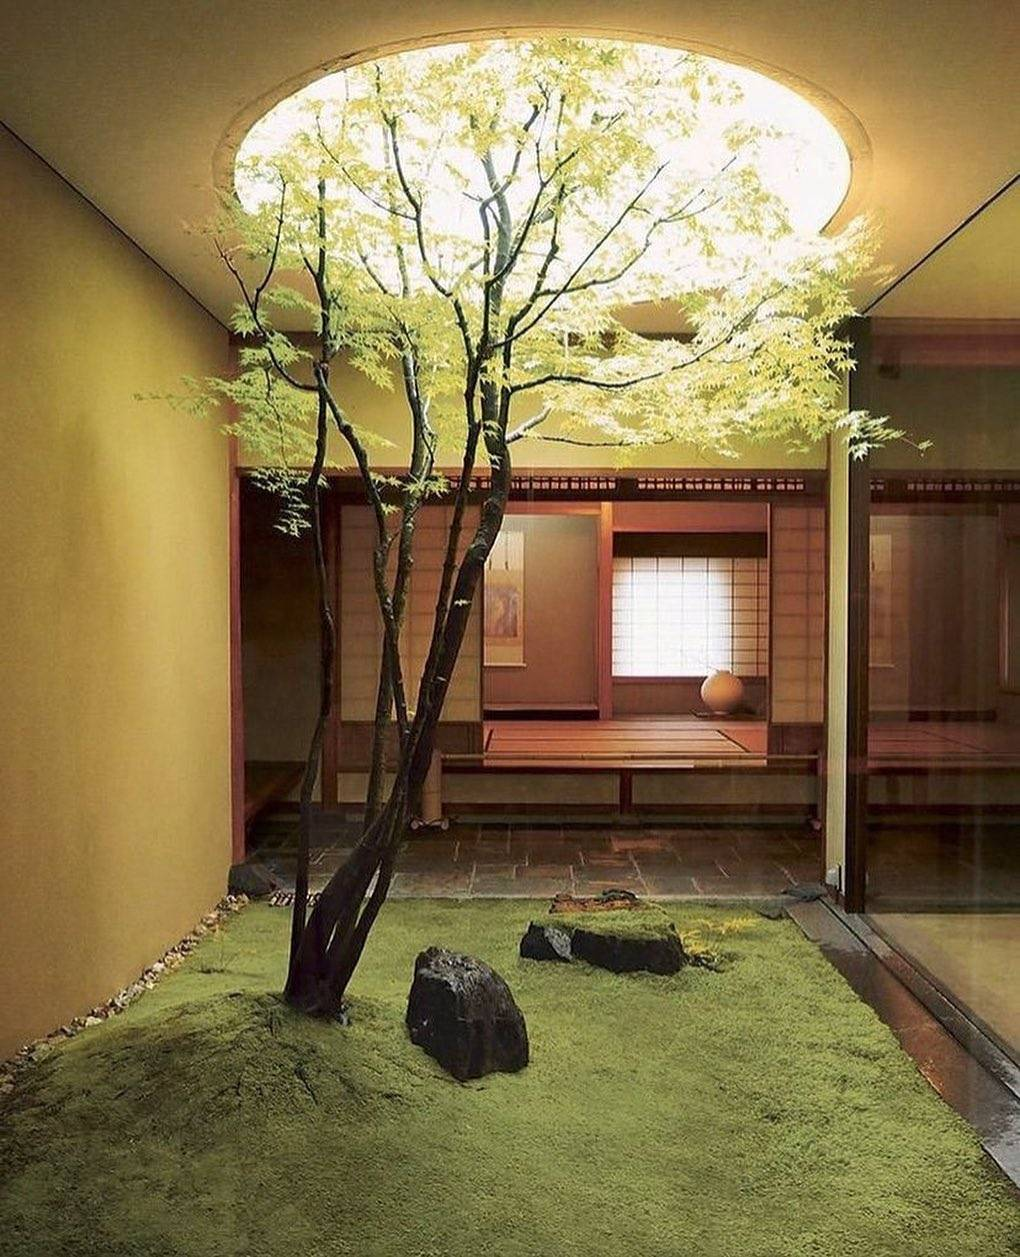 Outdoor alcove with Tree peaking out of skylight